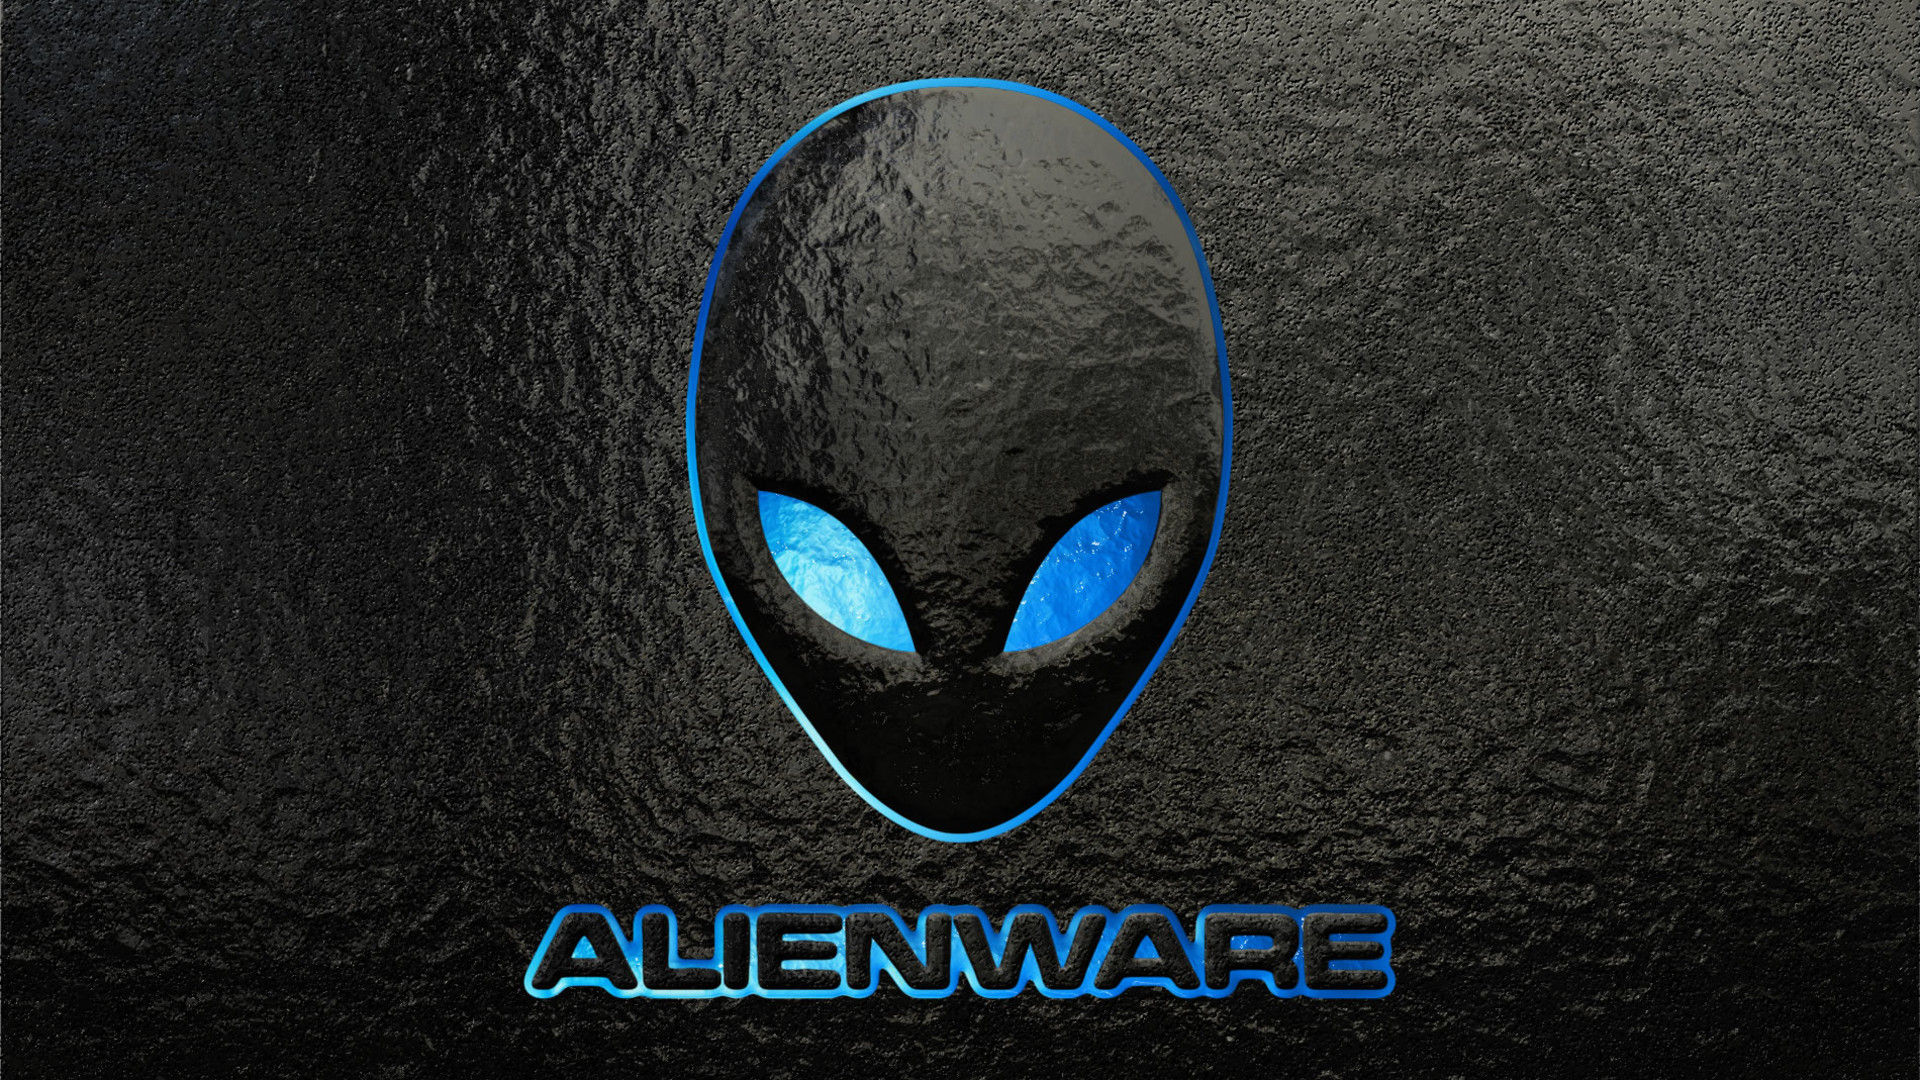 … hd backgrounds alienware wallpapers cool 1080p windows wallpapers …